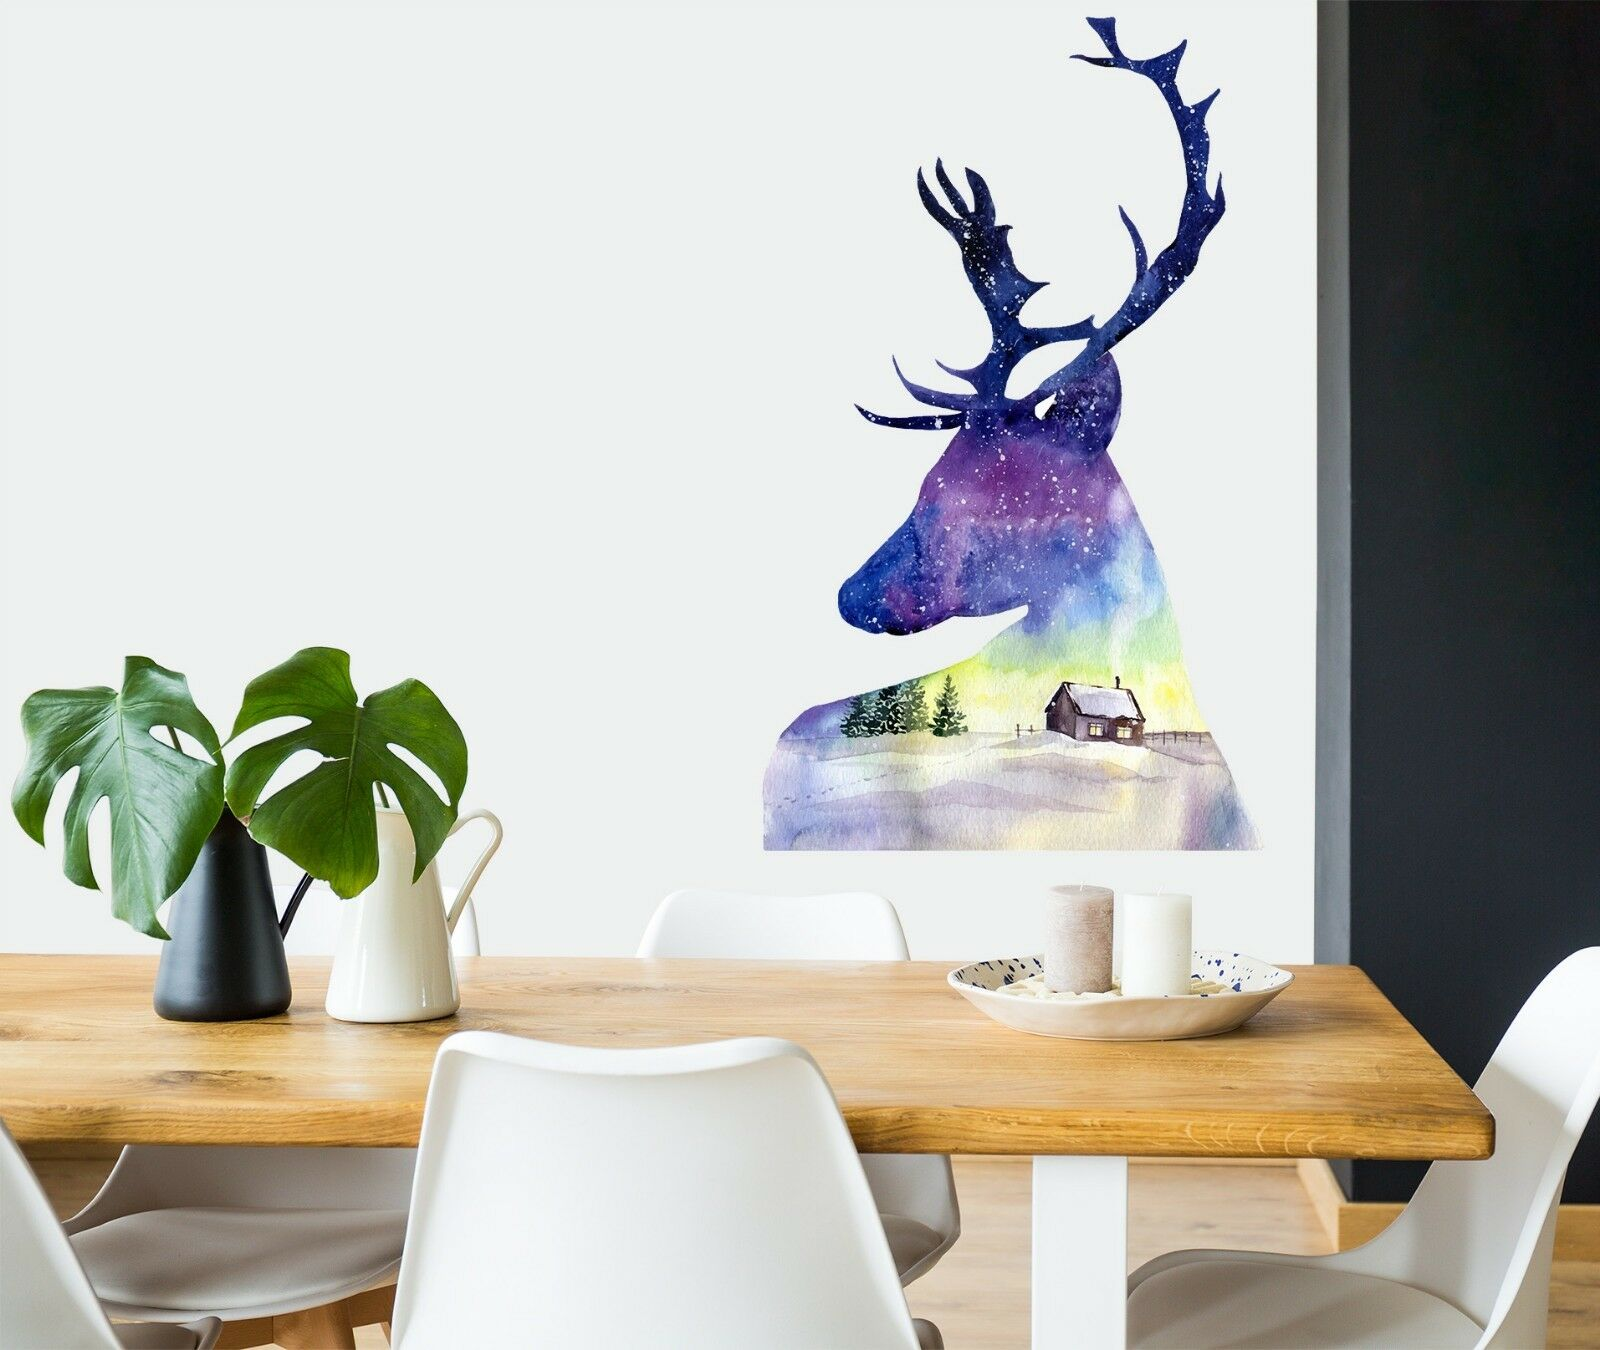 3D Christmas Xmas Creative 4 Wallpaper Mural Floor Wall Print Decal Wall Sticker